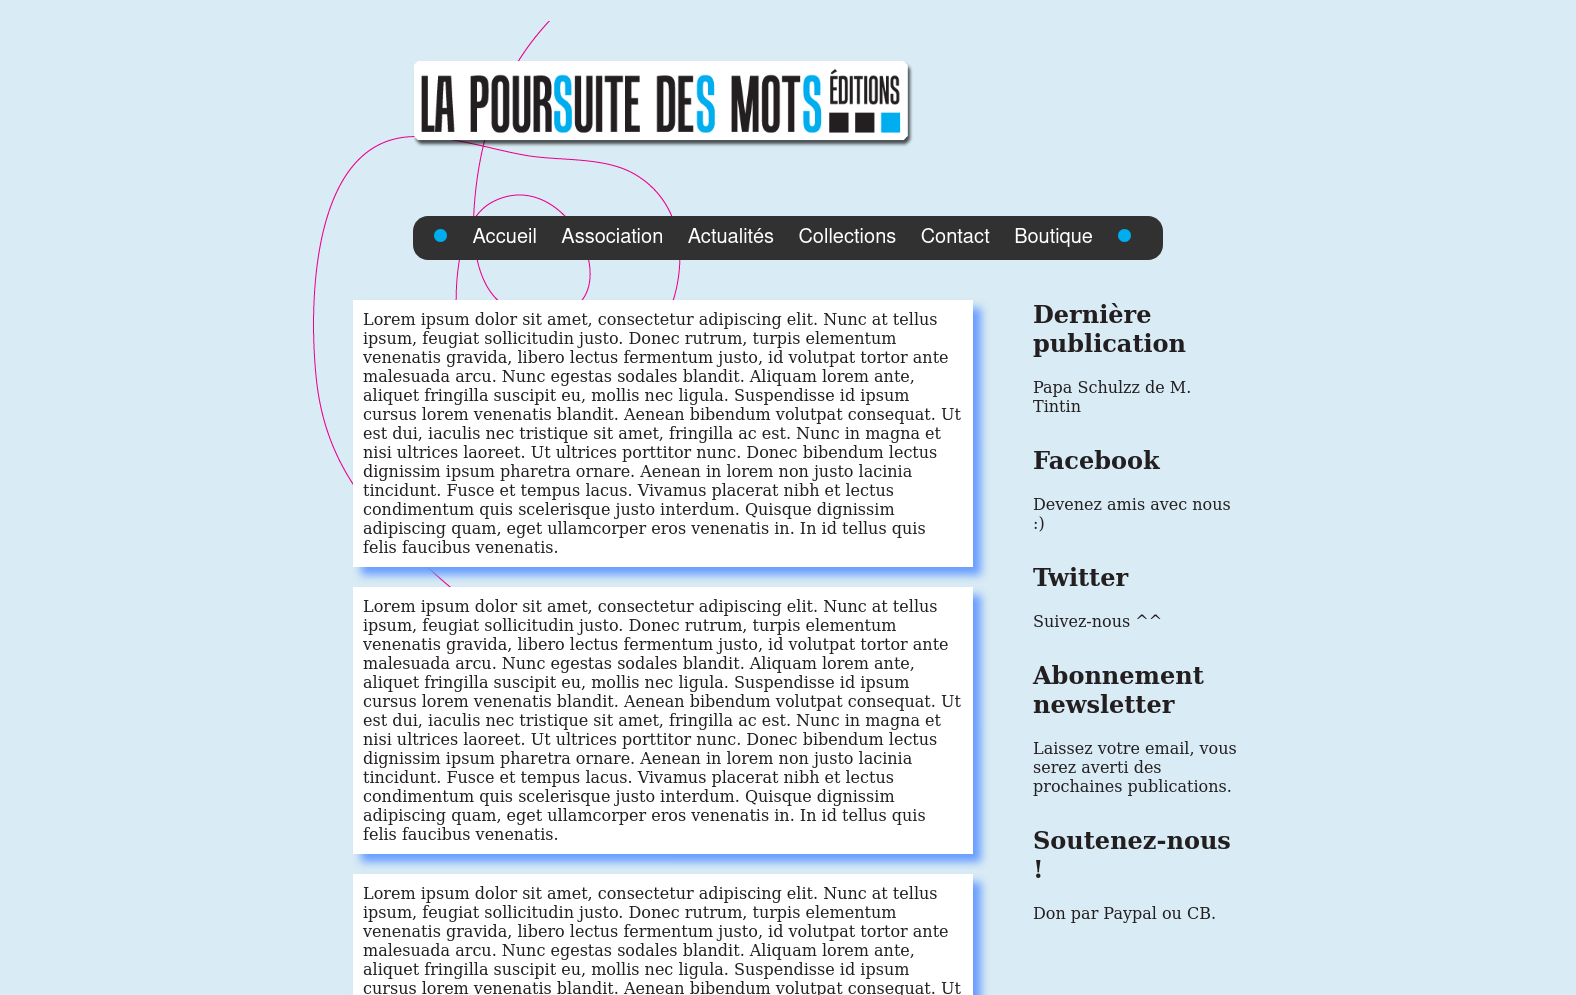 La poursuite des mots project illustration